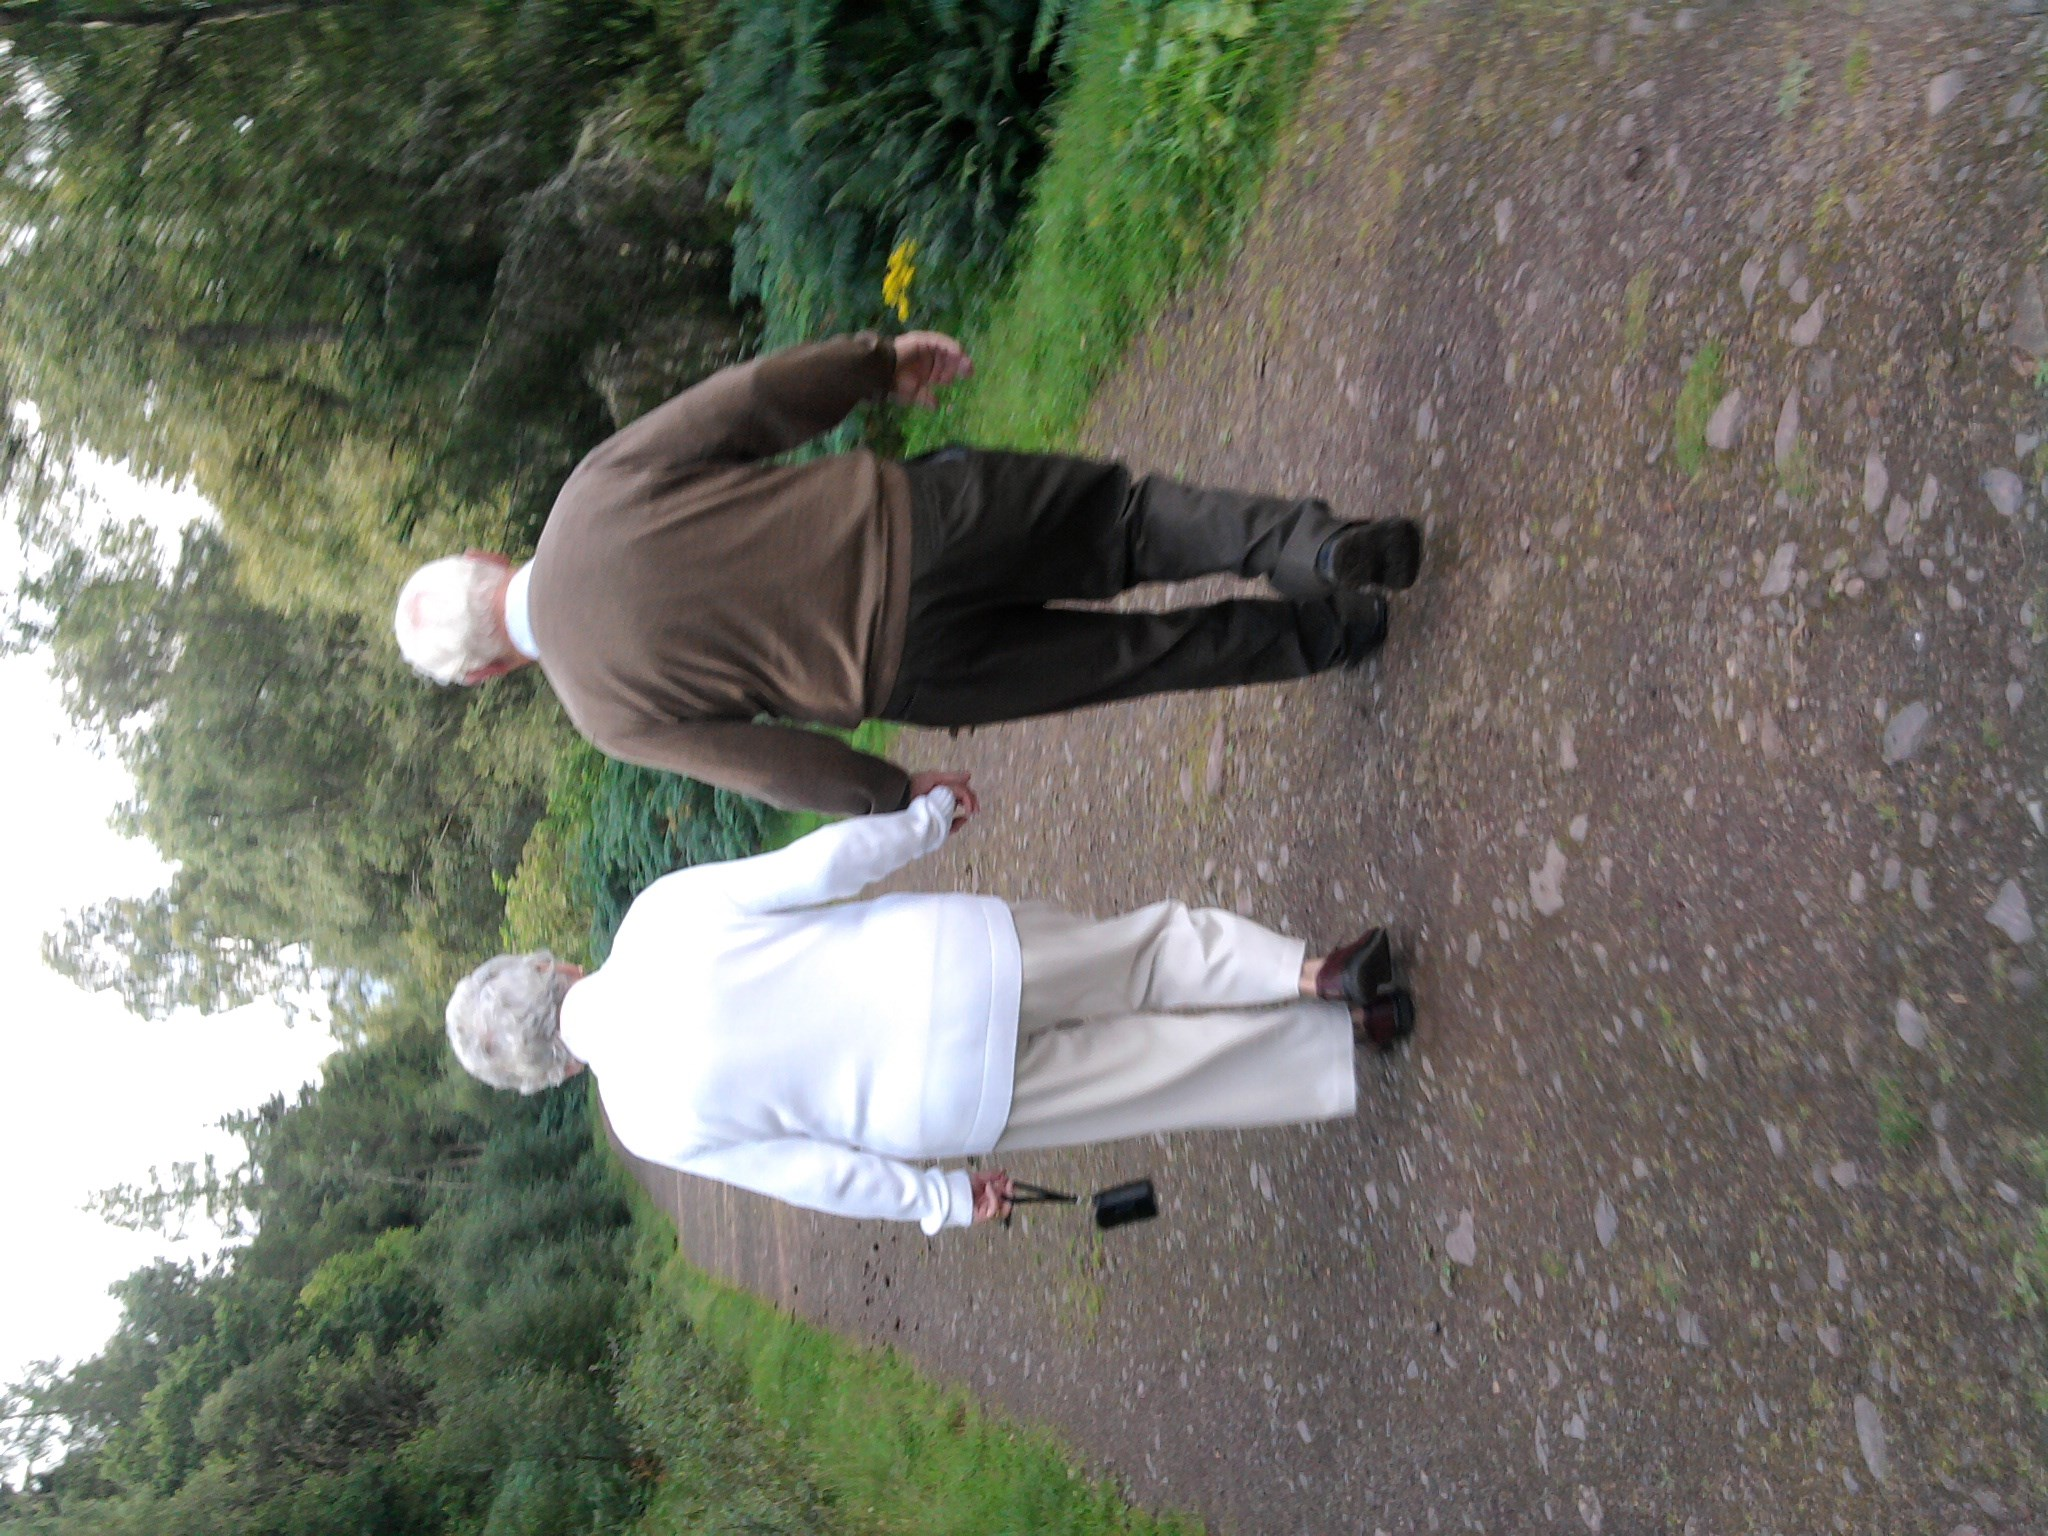 Hand in hand throughout their life together x